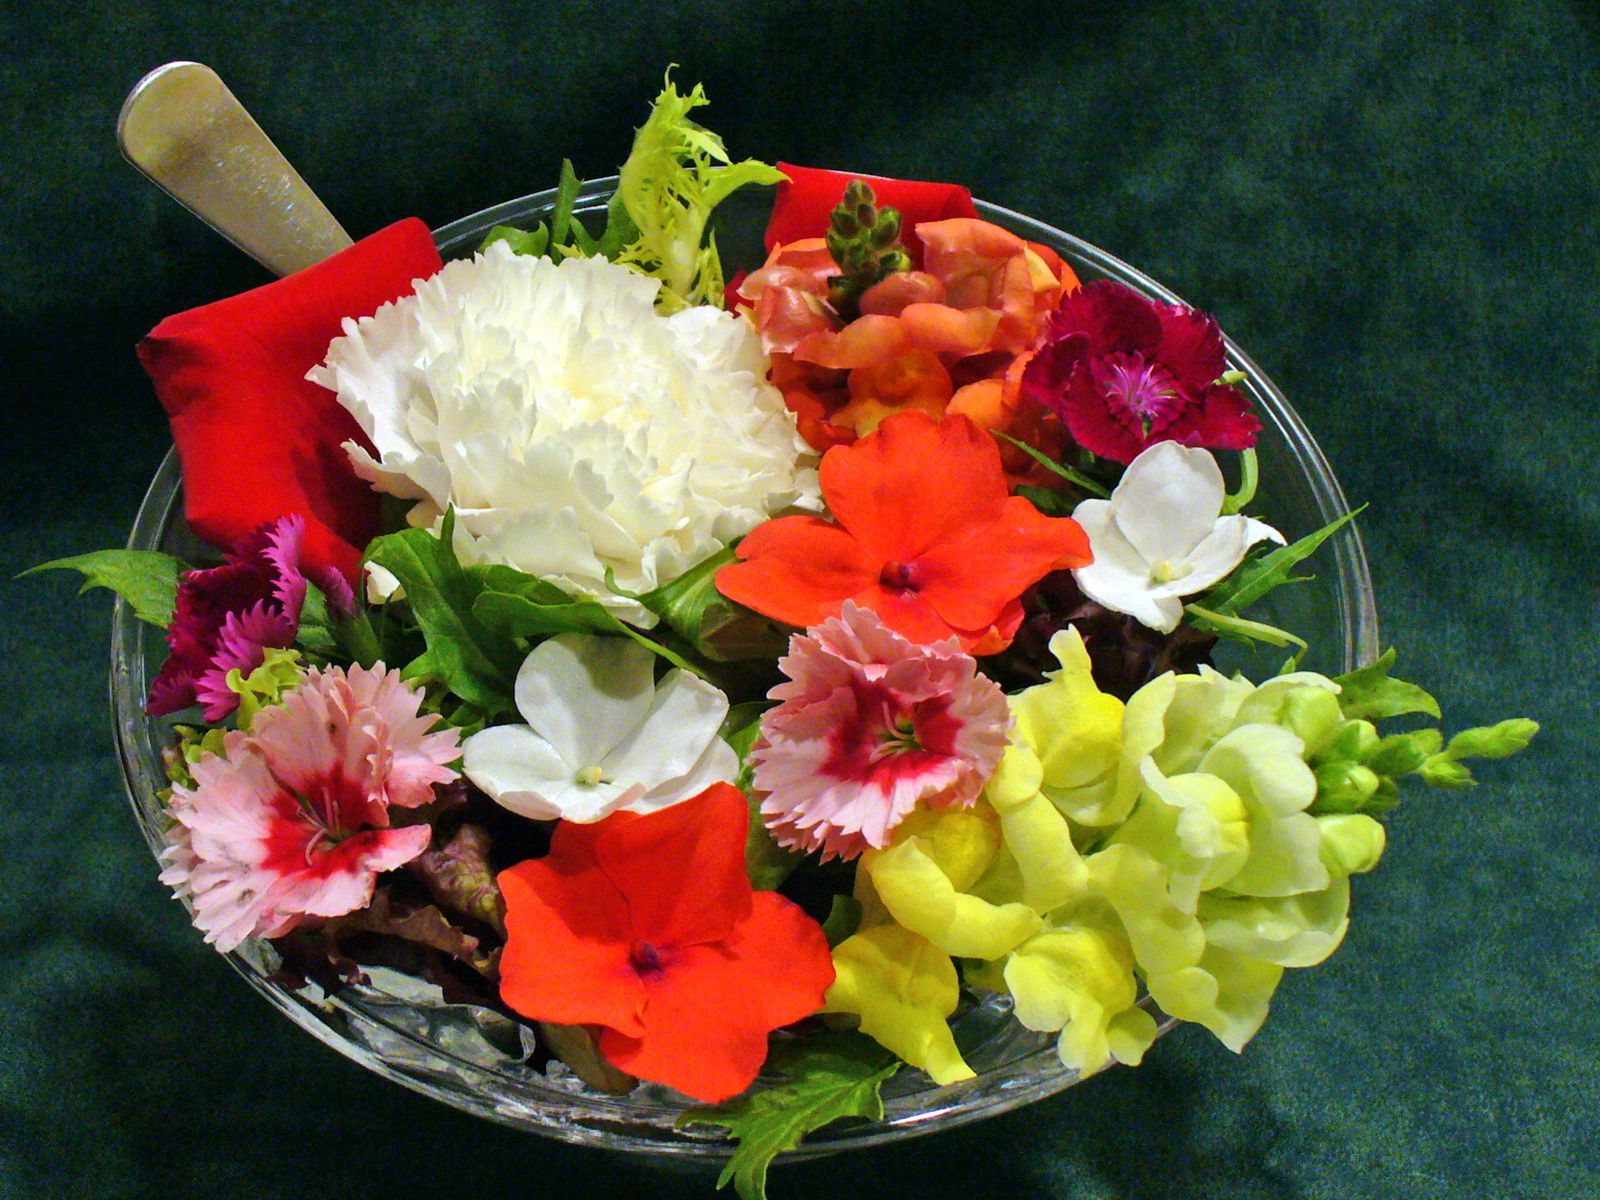 Cooking With Edible Flowers Tips and Hints